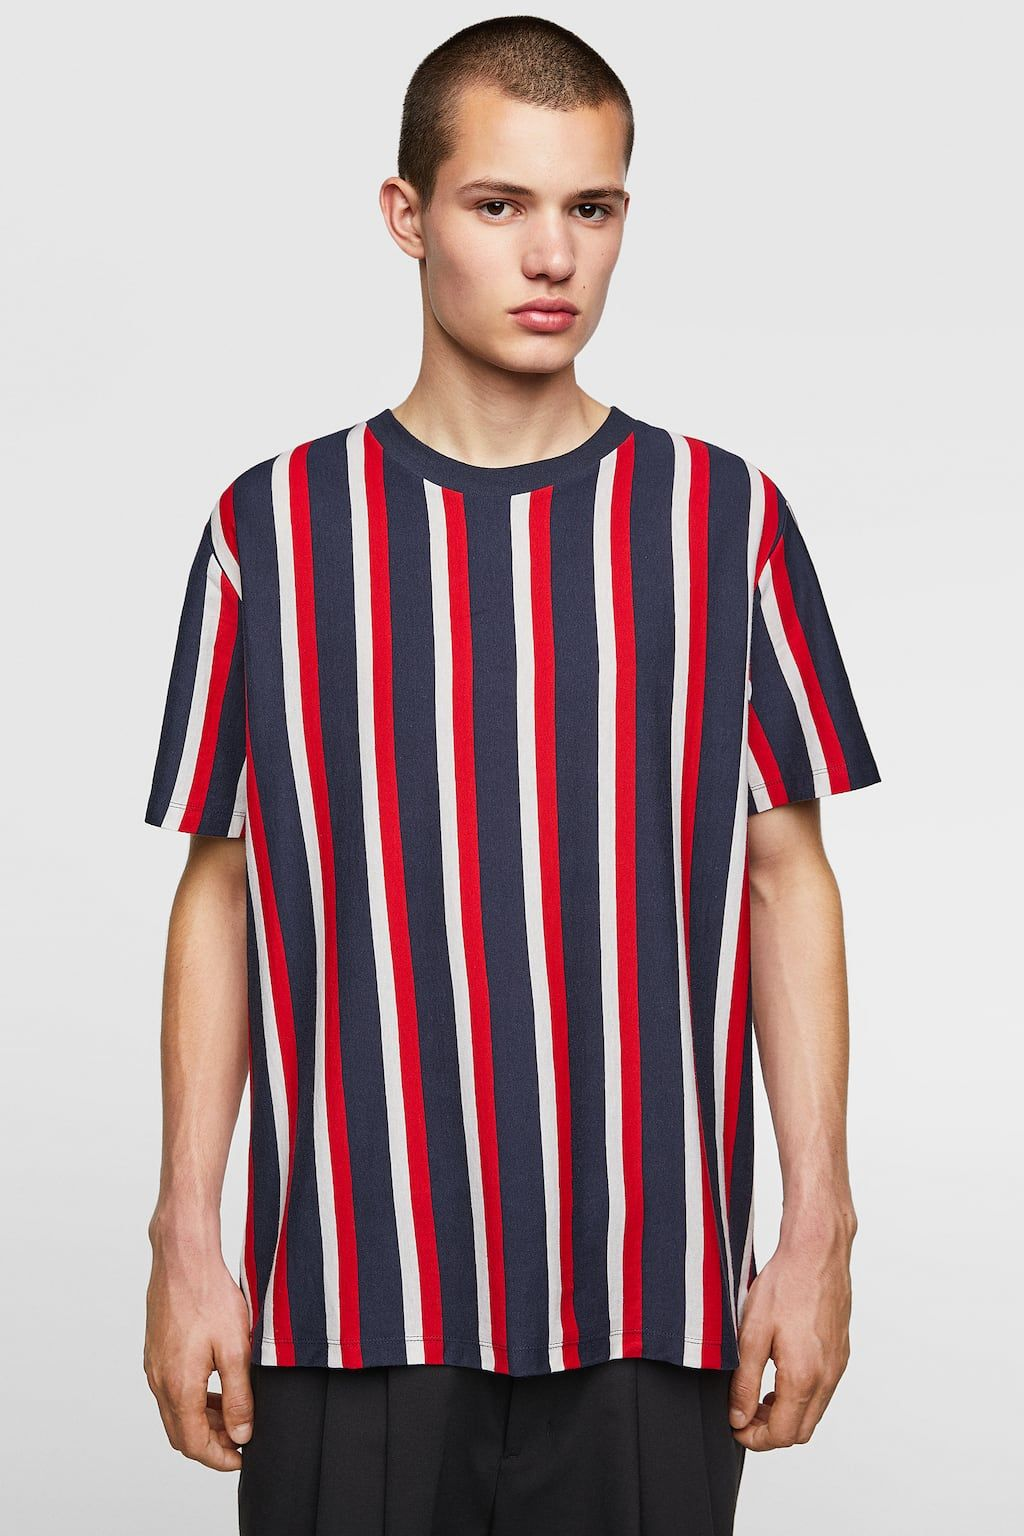 846cecf1 Image 2 of T-SHIRT WITH VERTICAL STRIPES from Zara | Apparel ...